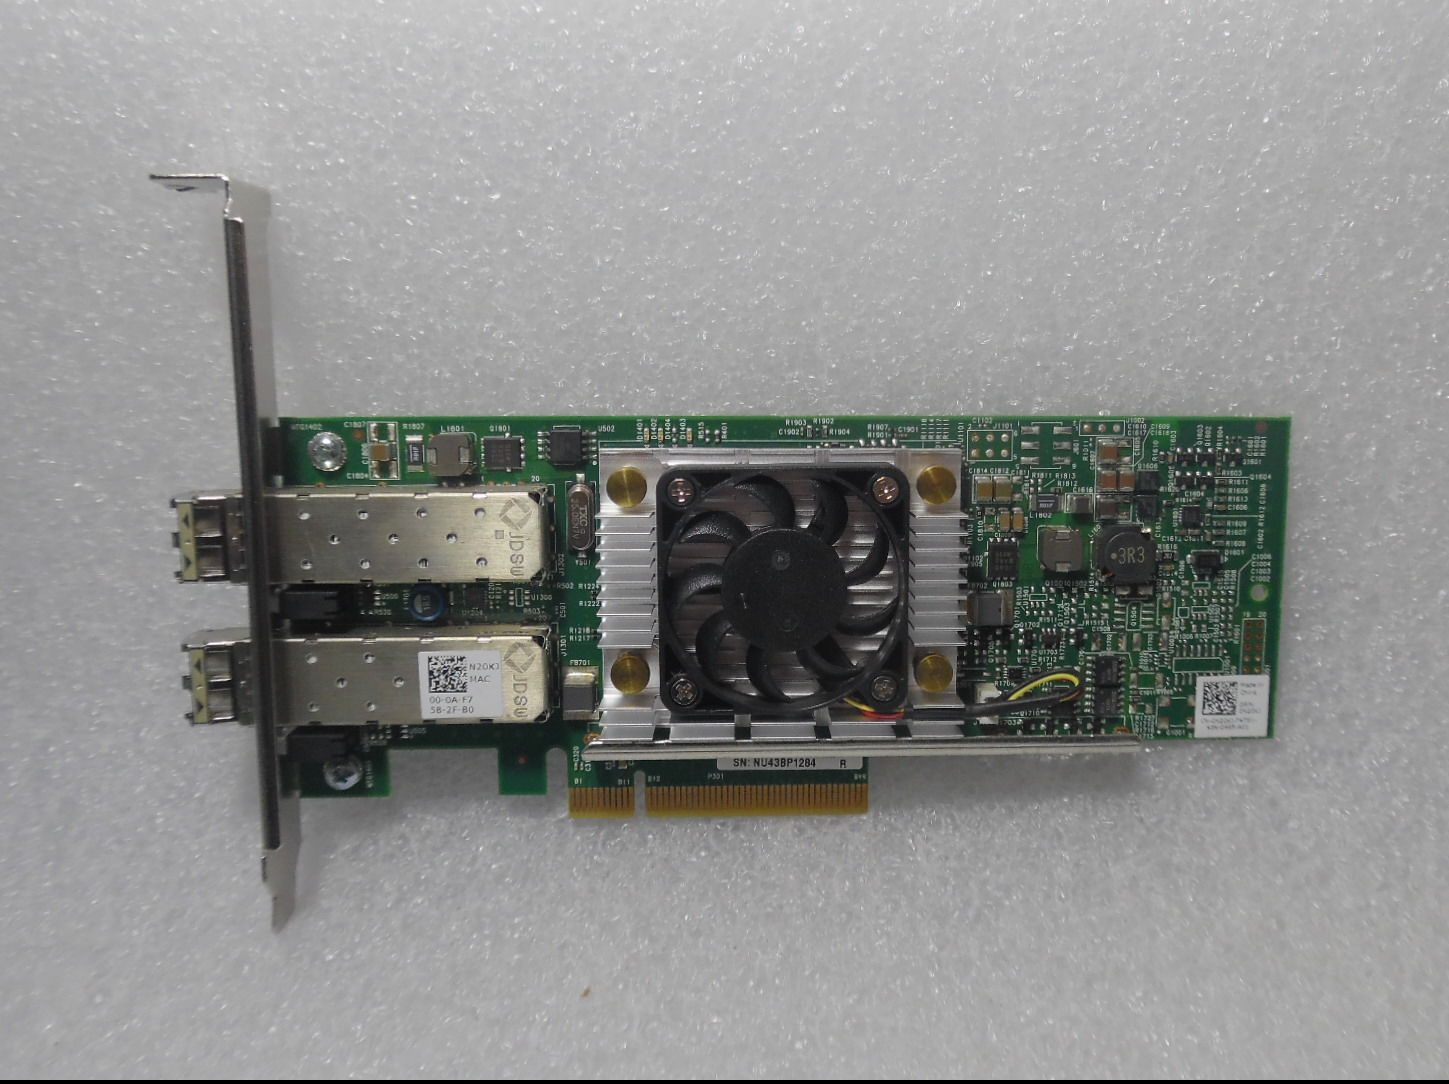 Dell N20KJ Broadcom 57810S Dual Port 10GbE PCIe Converged Network Adapter  SFP+